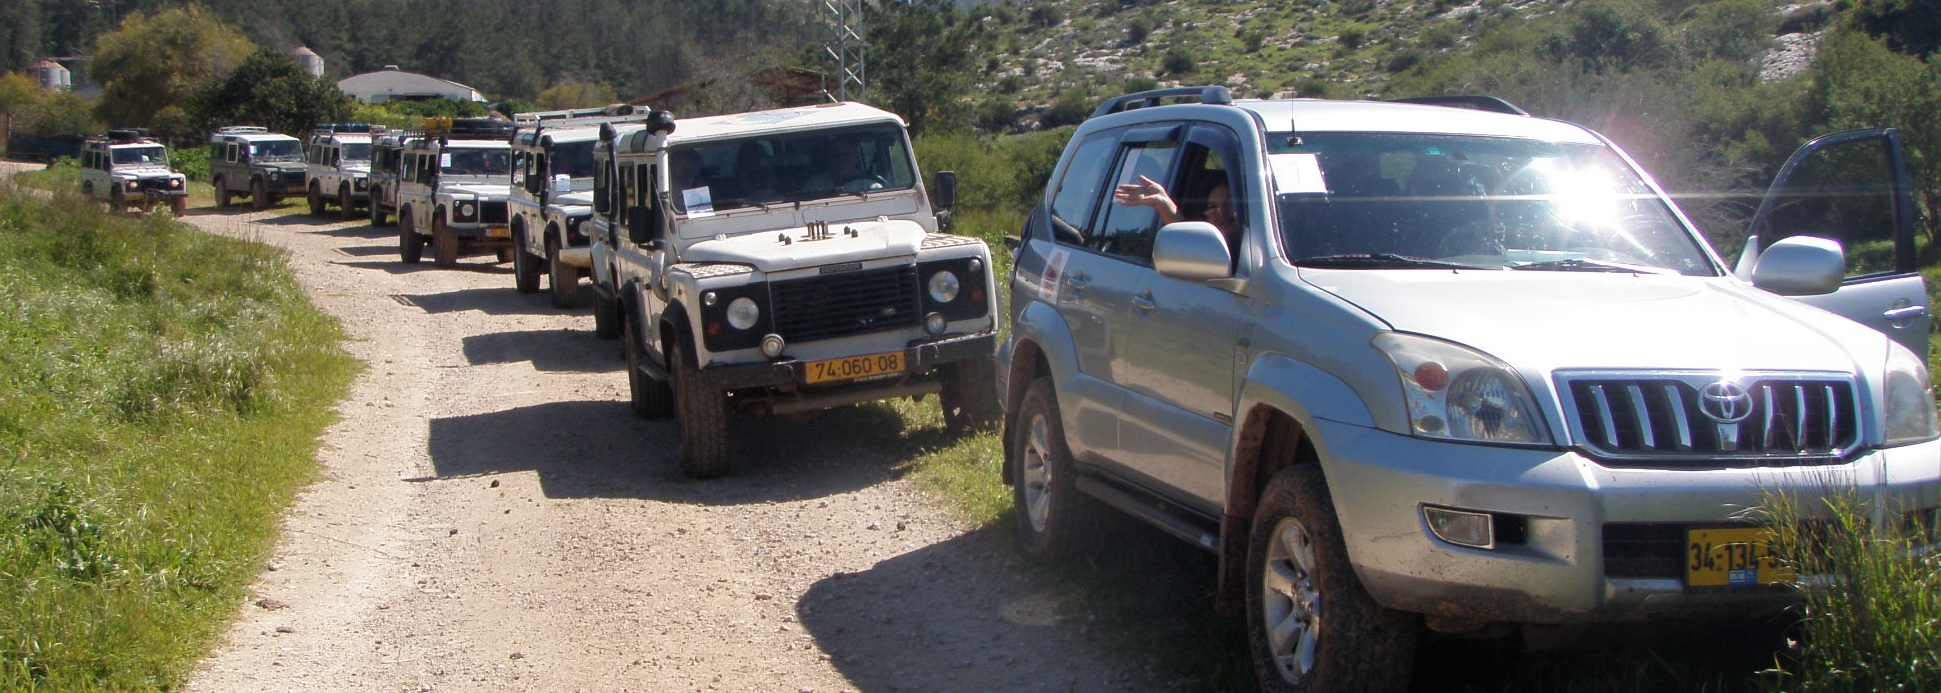 4x4 off road tours in Israel: Outdoor Team Training in Jerusalem hills. ימי גיבוש וכיף